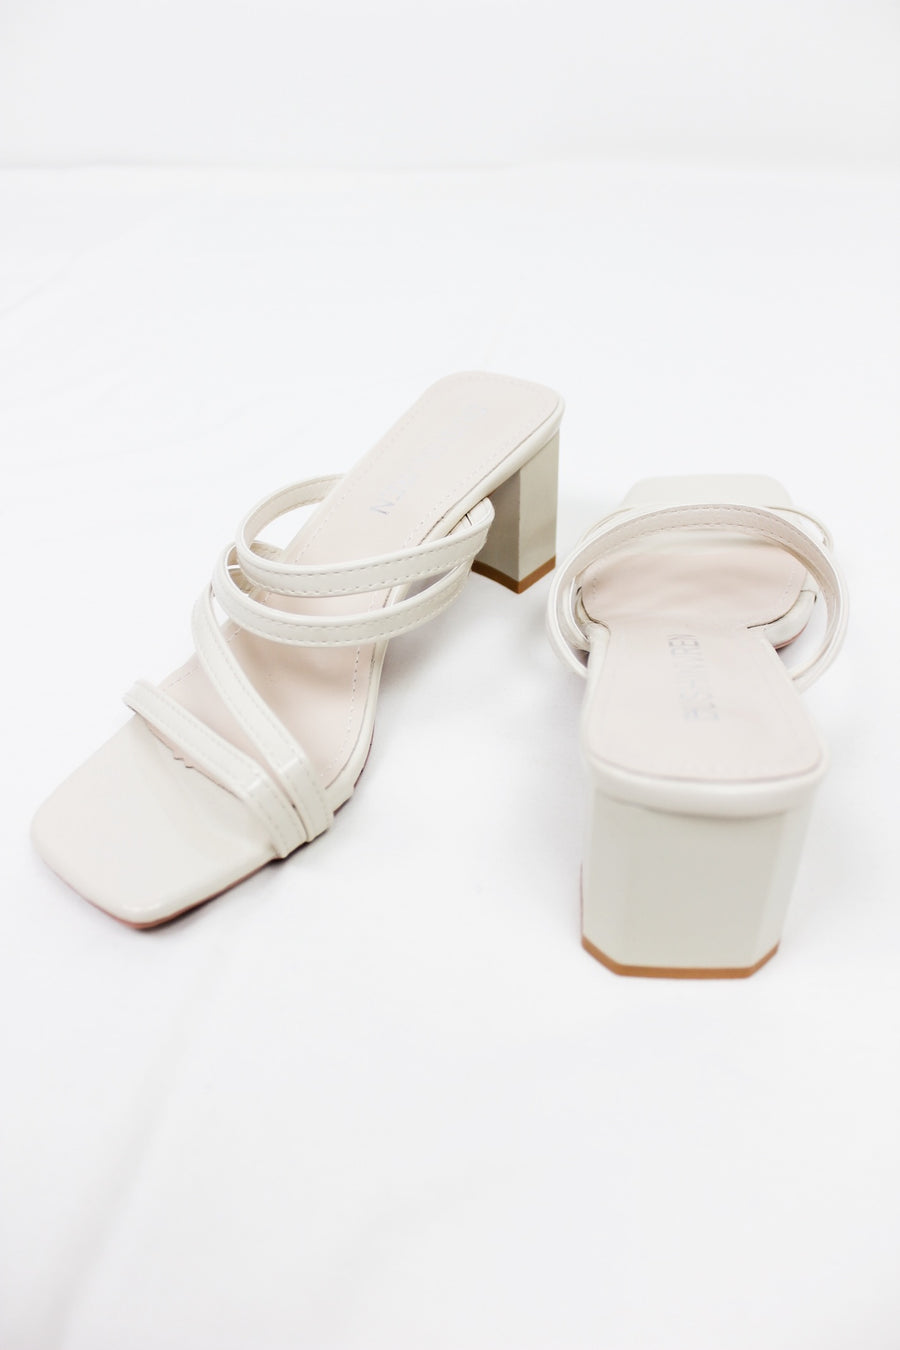 LOVING YOU MULES / CREAM - Halite Clothing